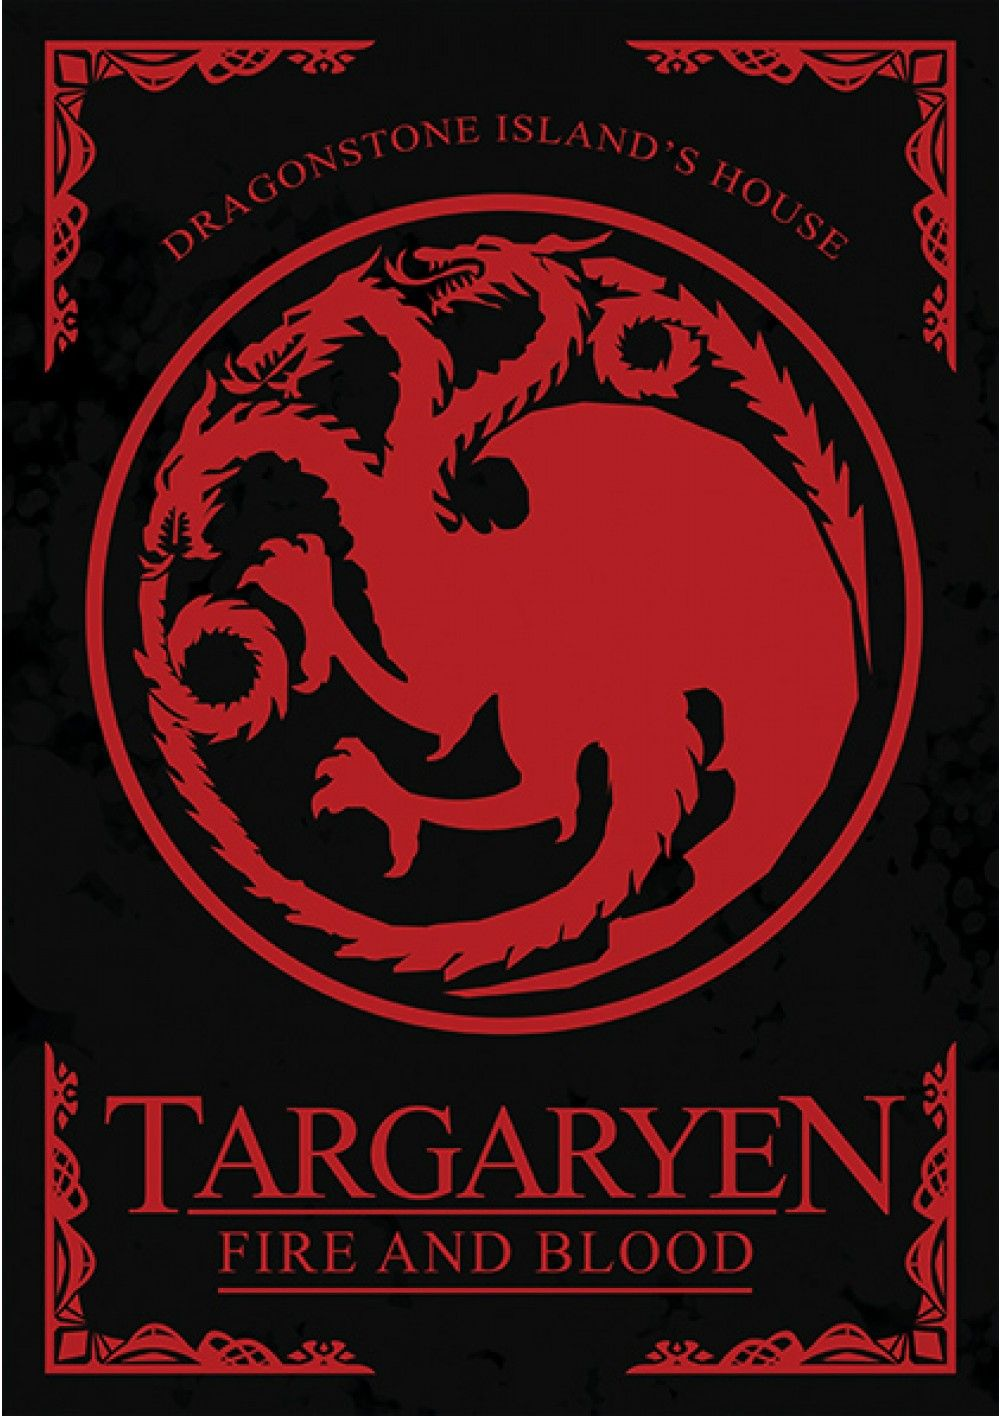 game of thrones targaryen lanyard